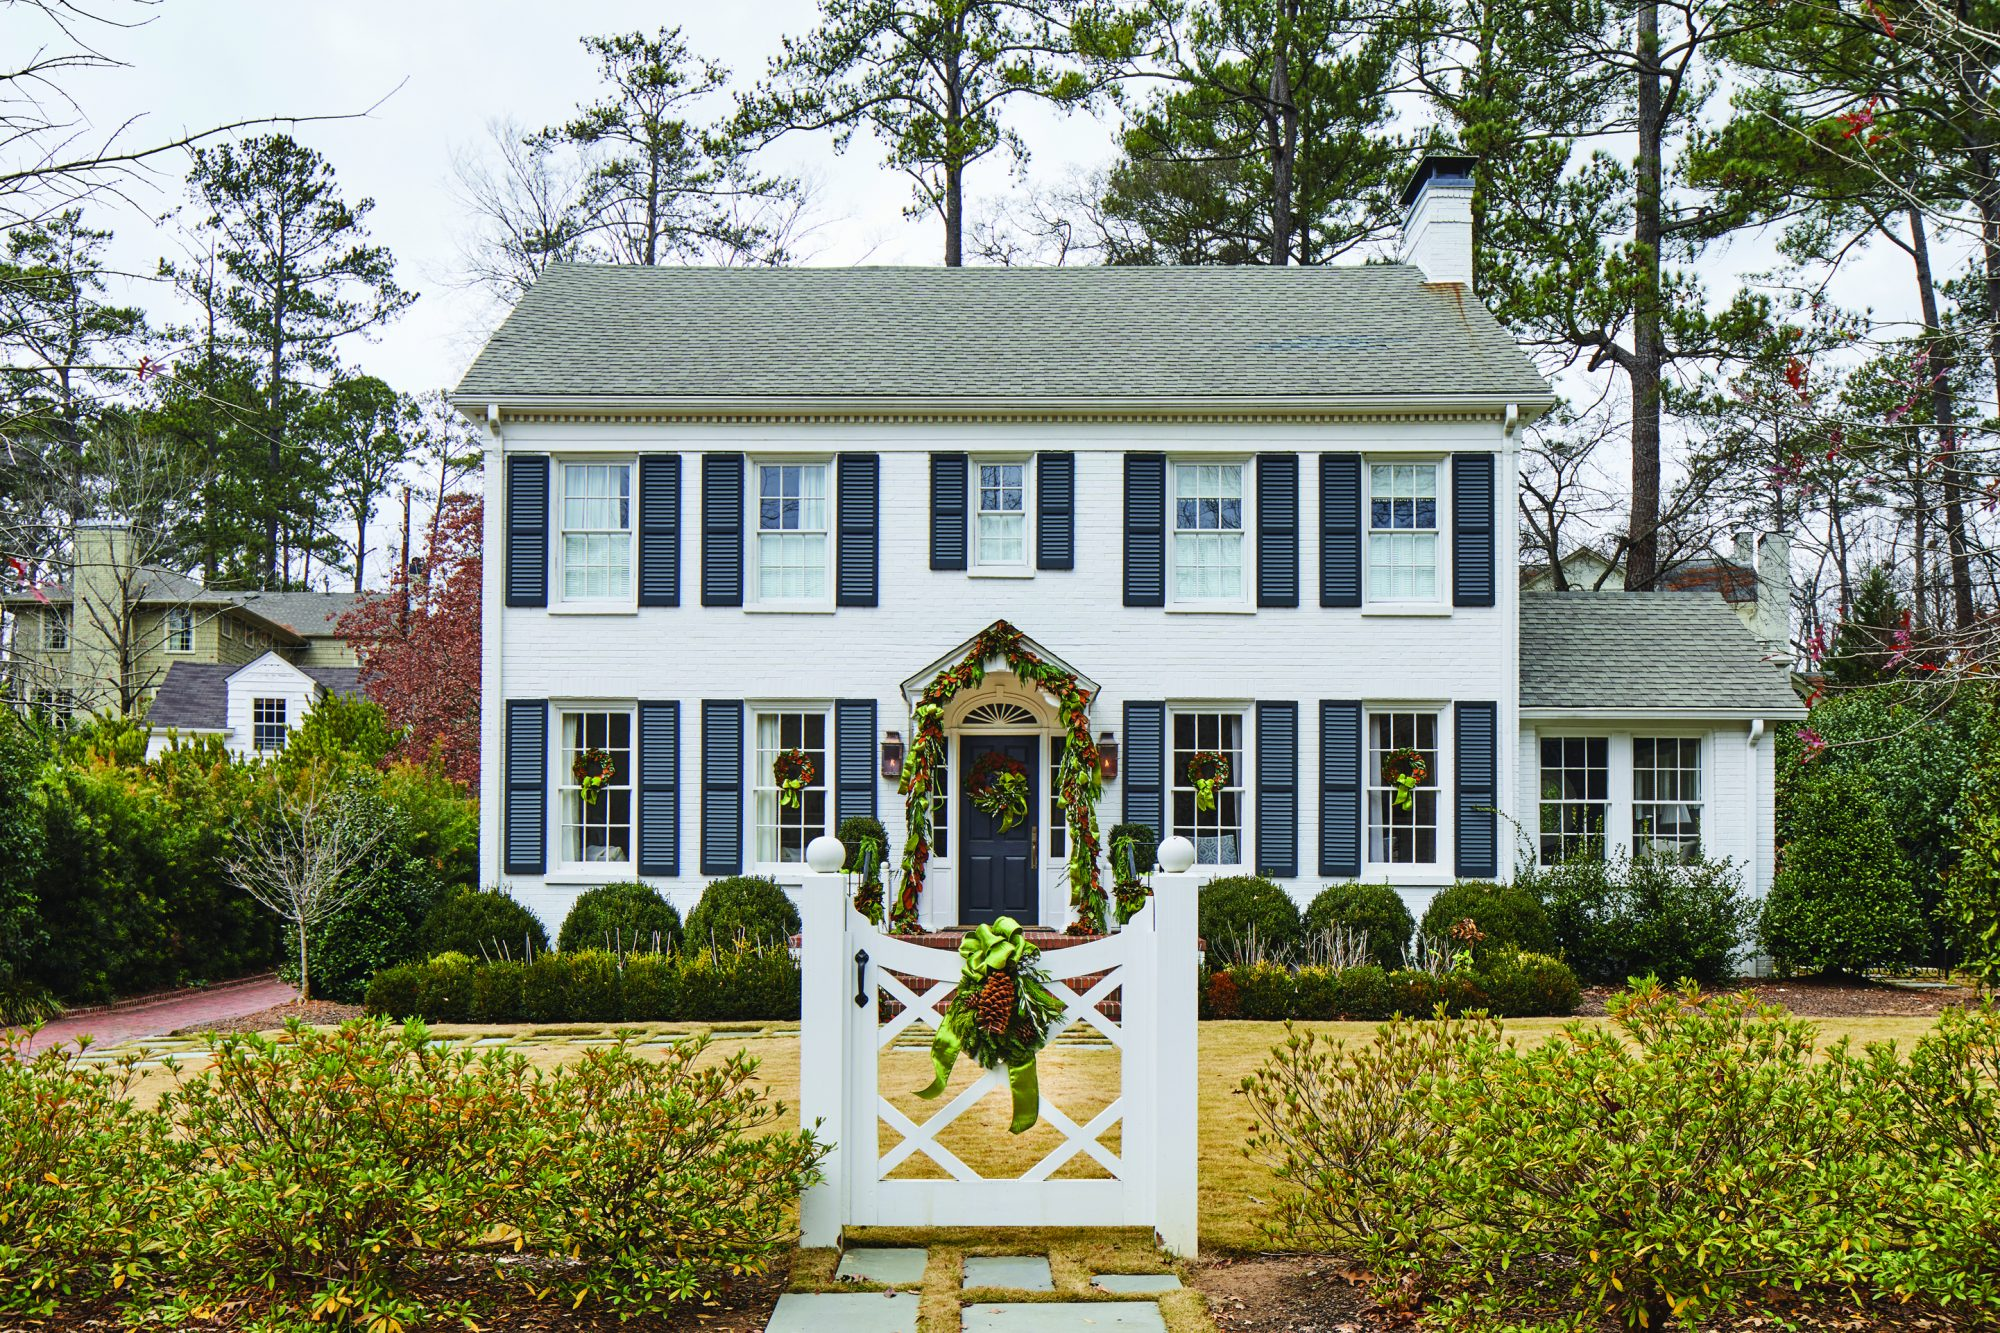 White Brick Colonial Christmas Decorations Exterior